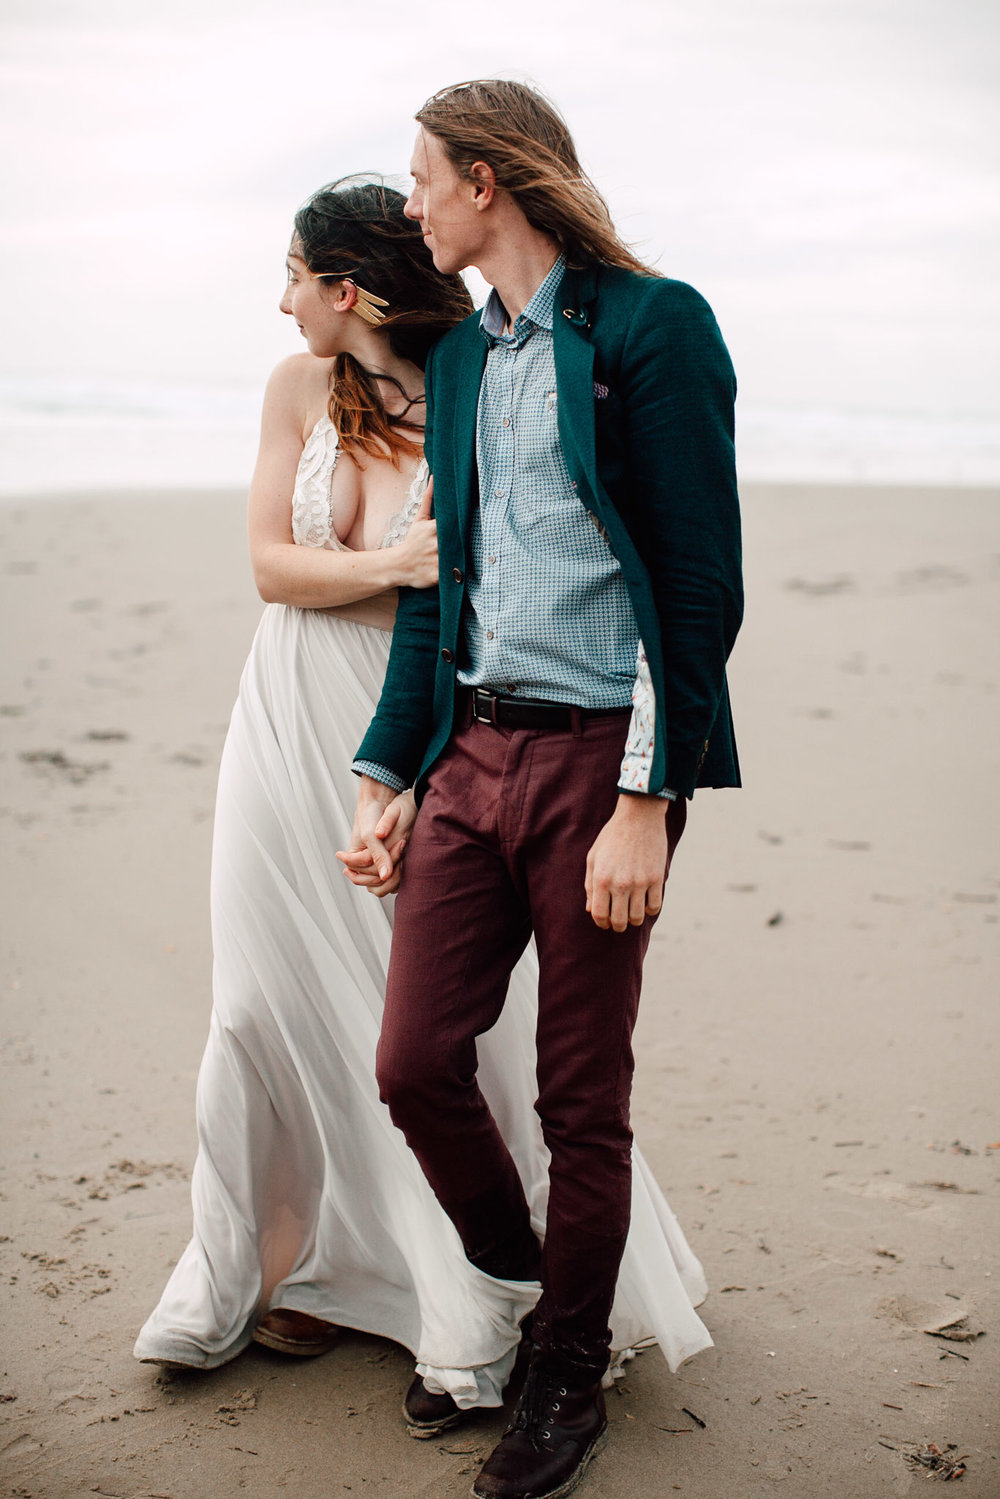 Oregon-Coast-Manzanita-Beach-Engagement-Pia-Anna-Christian-Wedding-Photography-PNW-GB-13.jpg